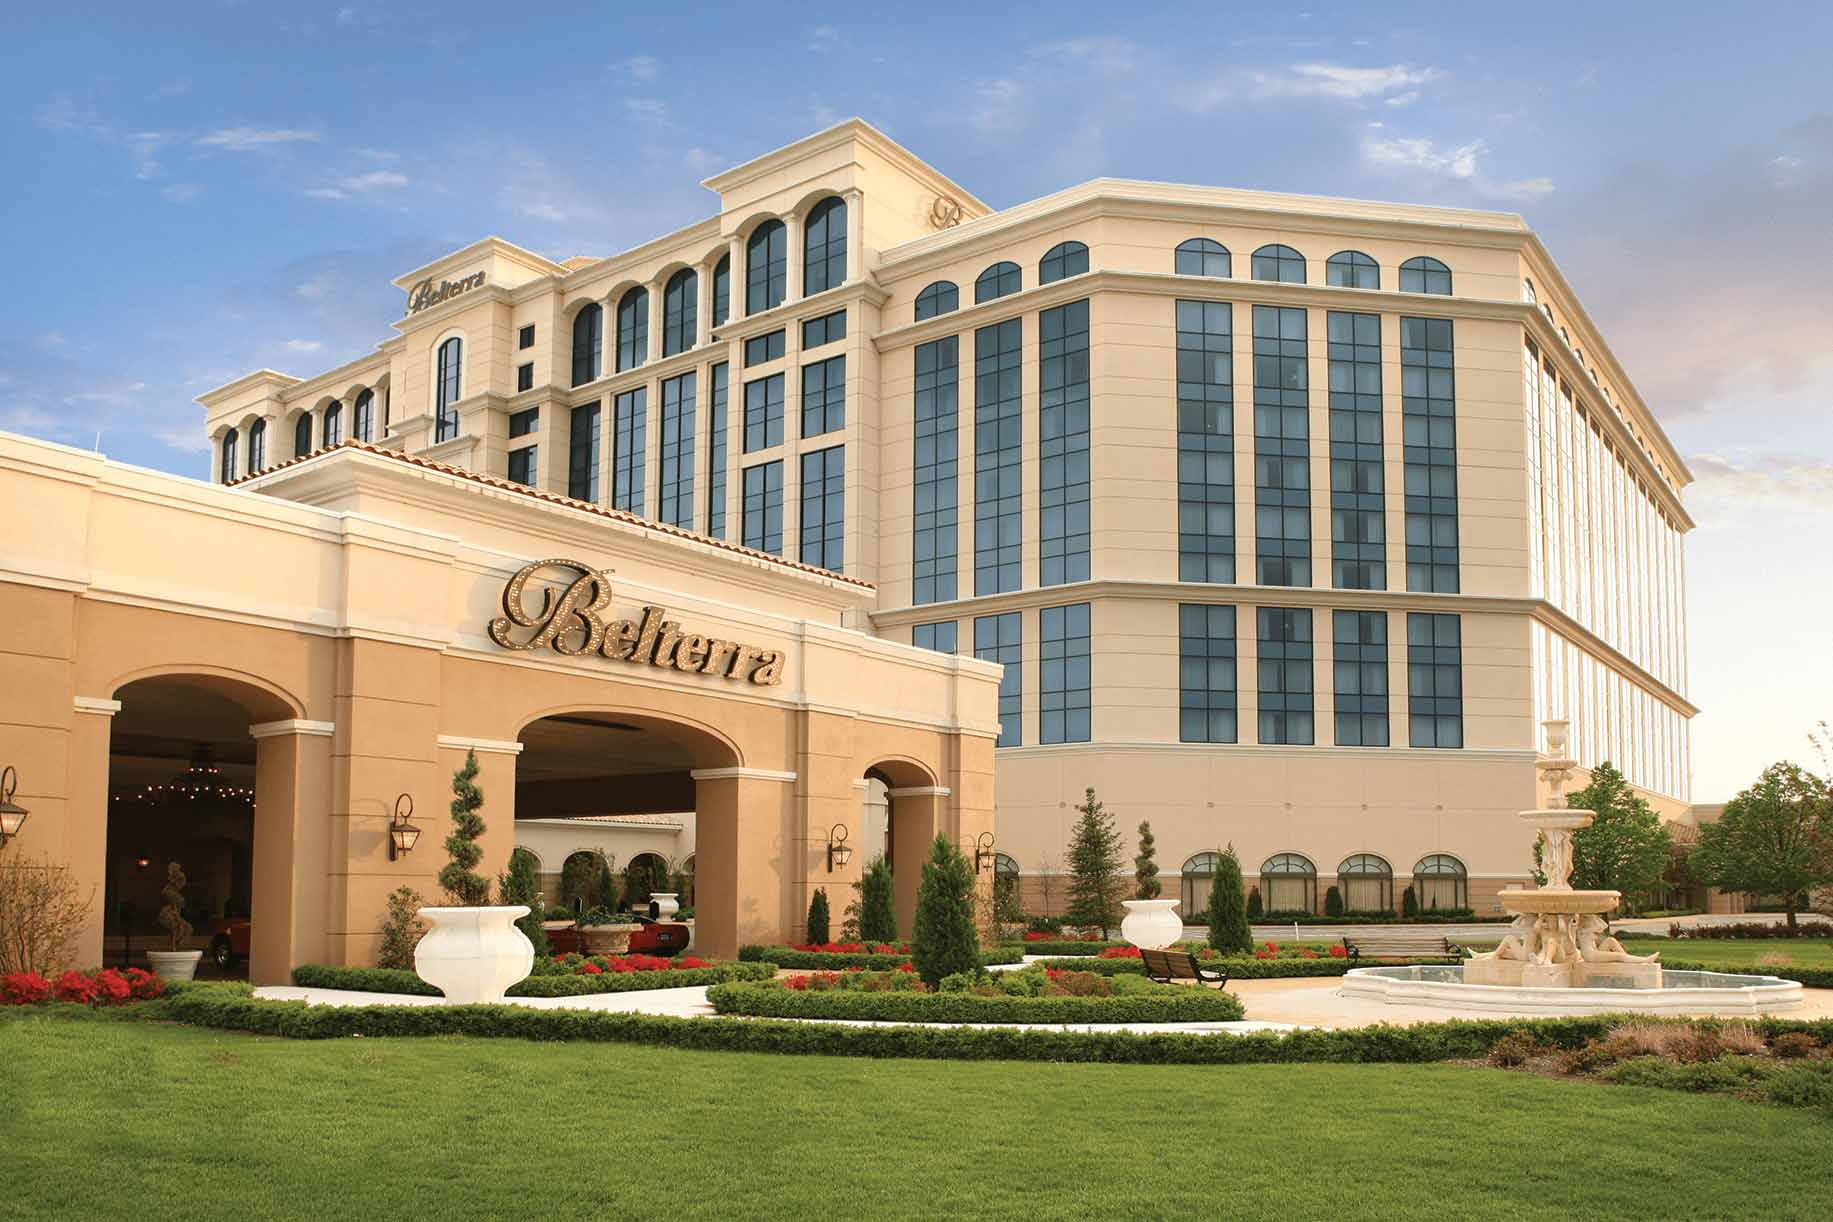 belterra-casino-front-view-day